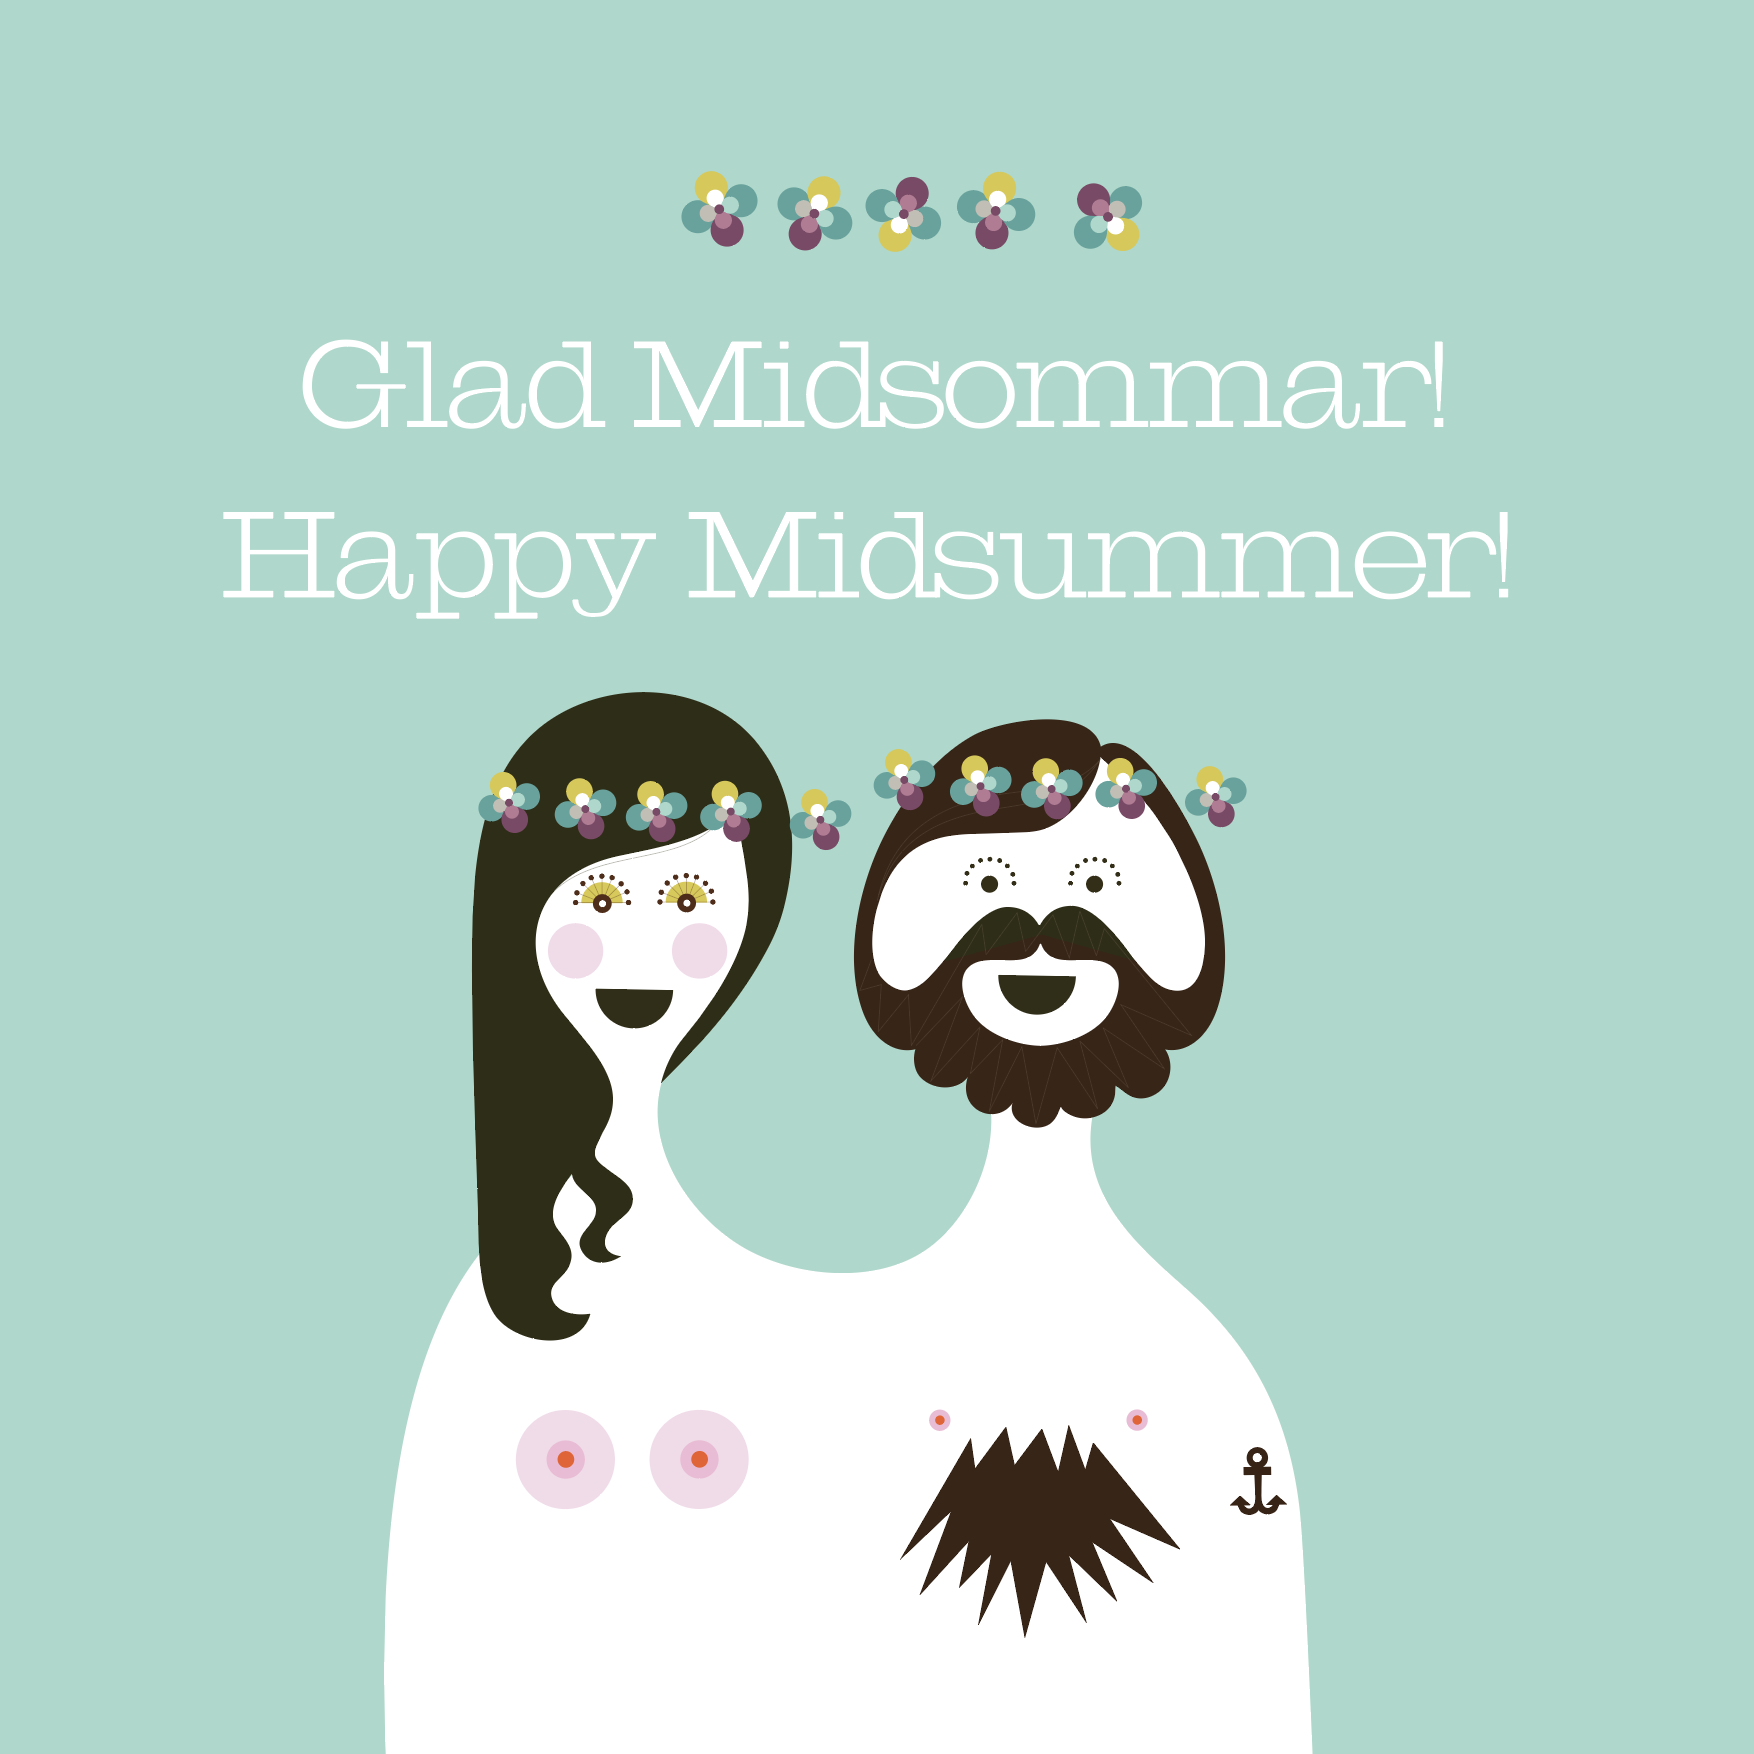 Happy midsummer! Glad midsommar!